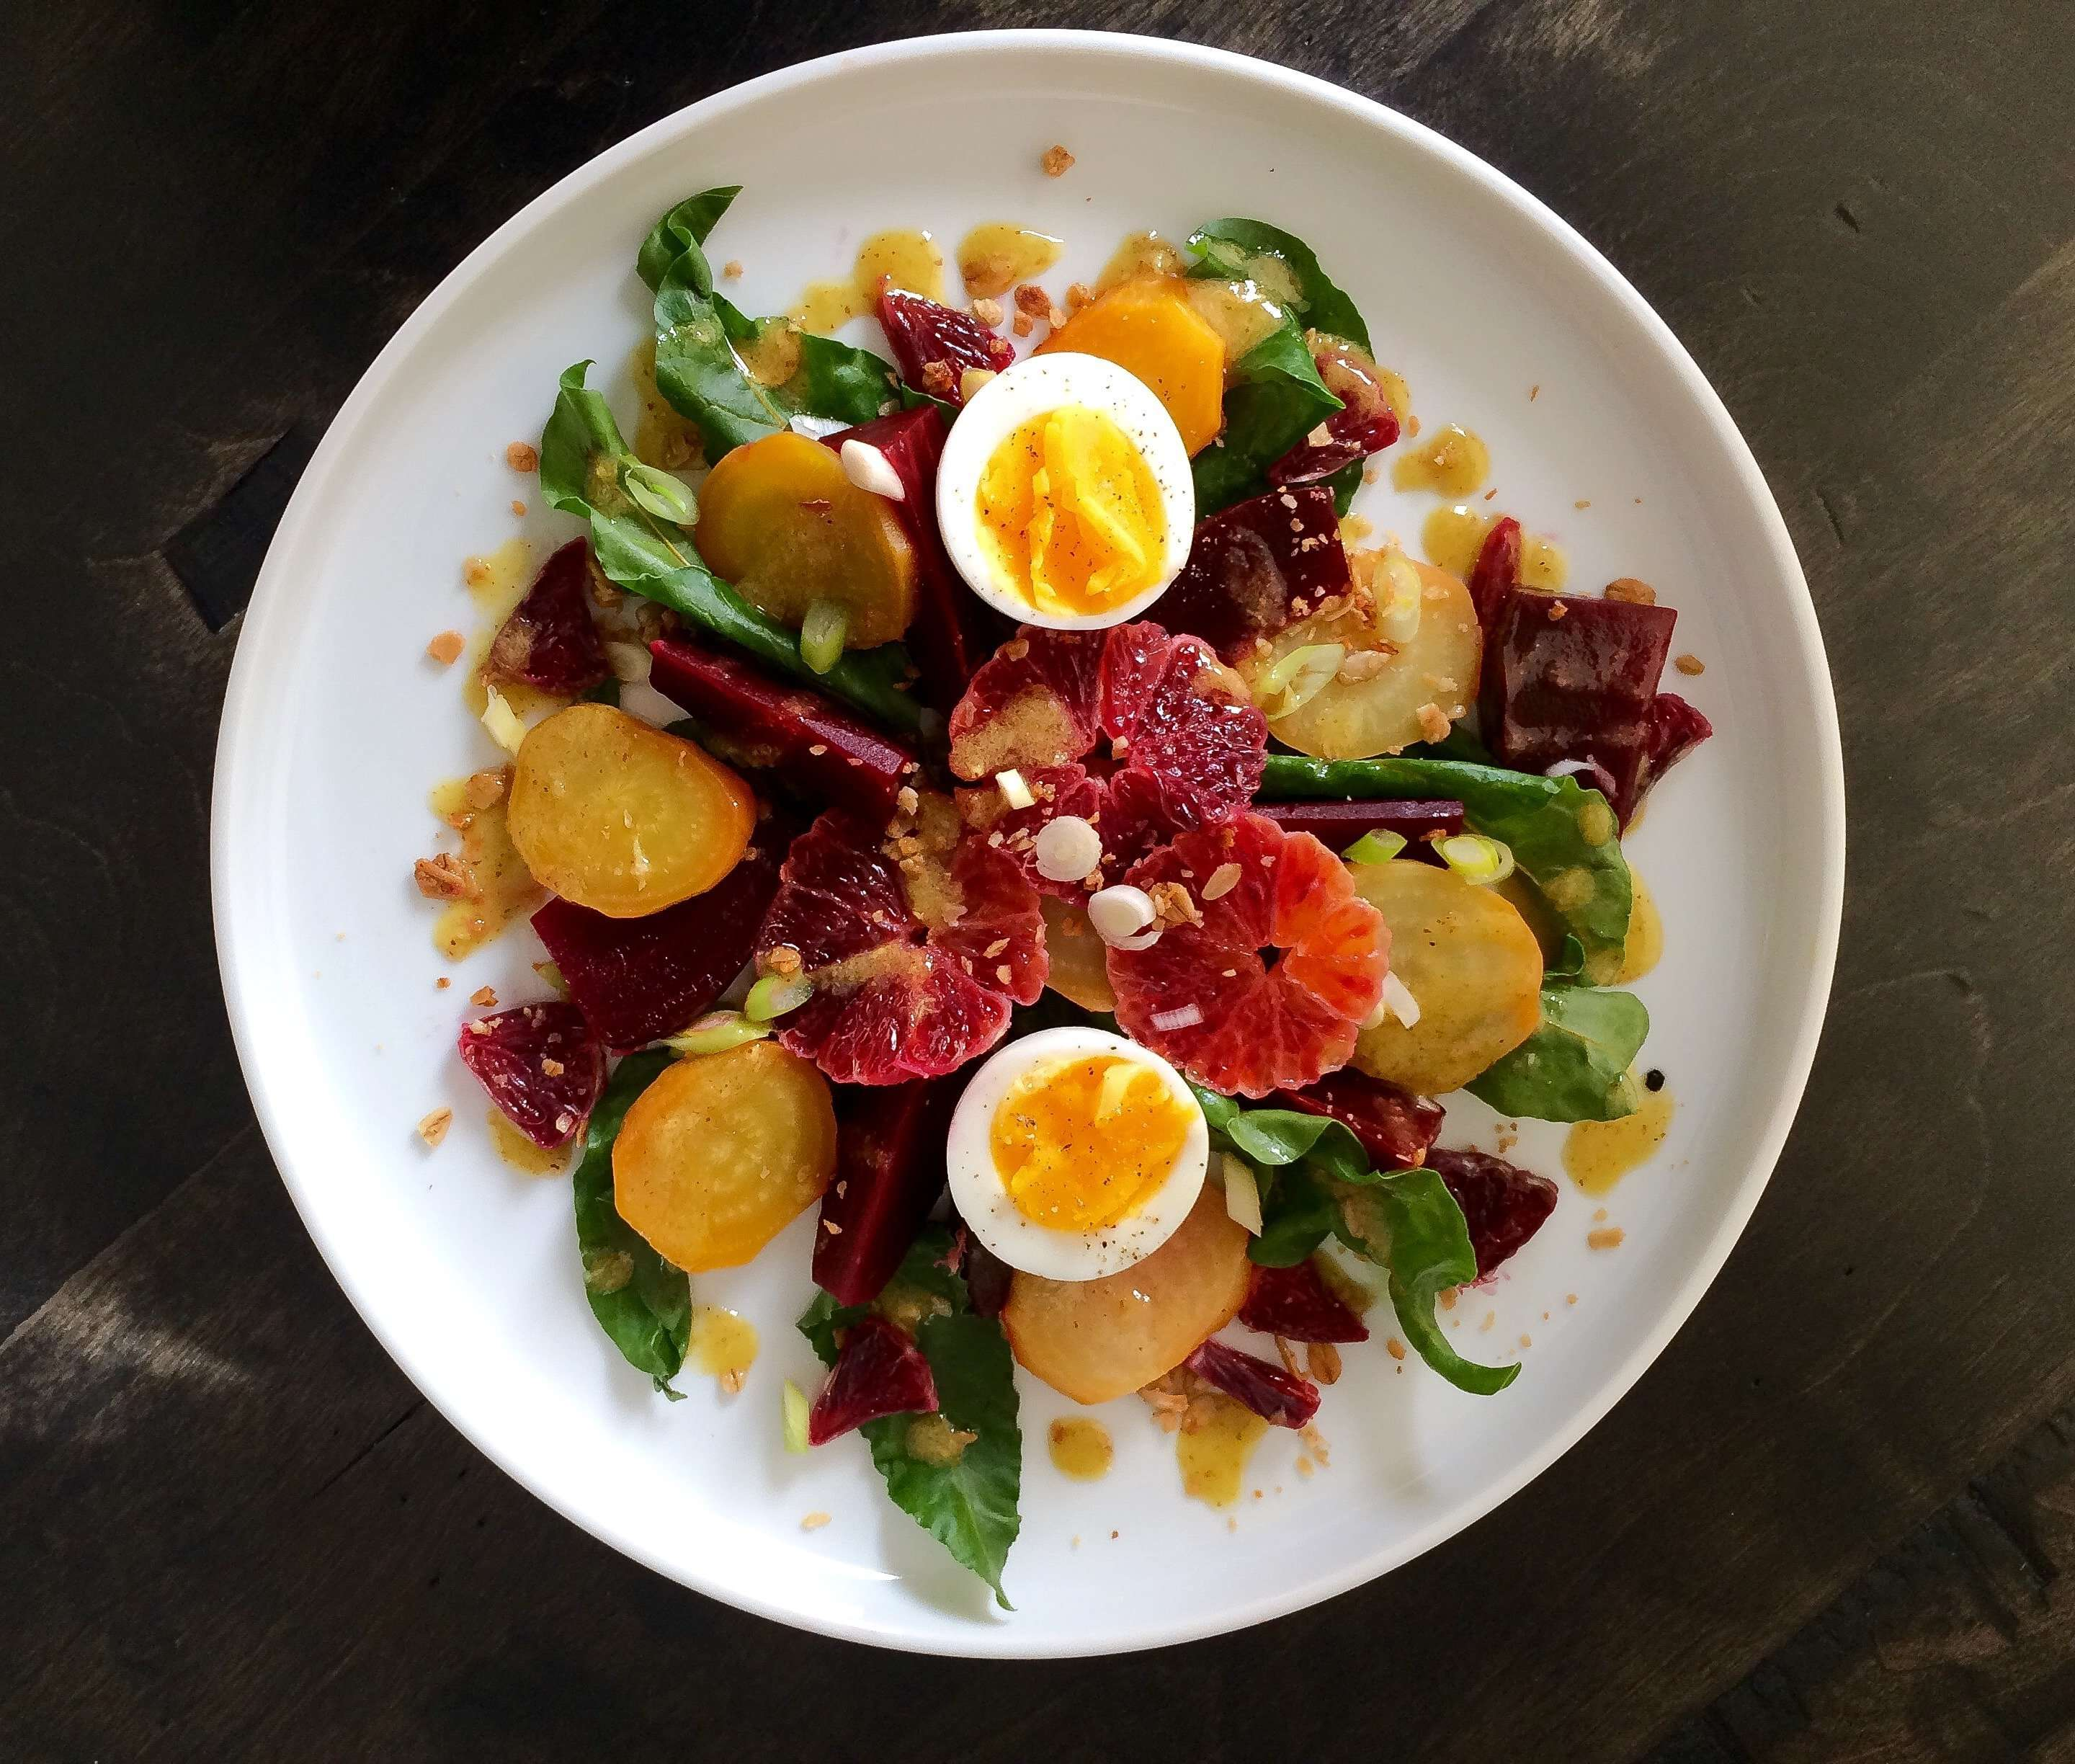 Roasted Beet and Blood Orange Salad with a White Balsamic Vinaigrette